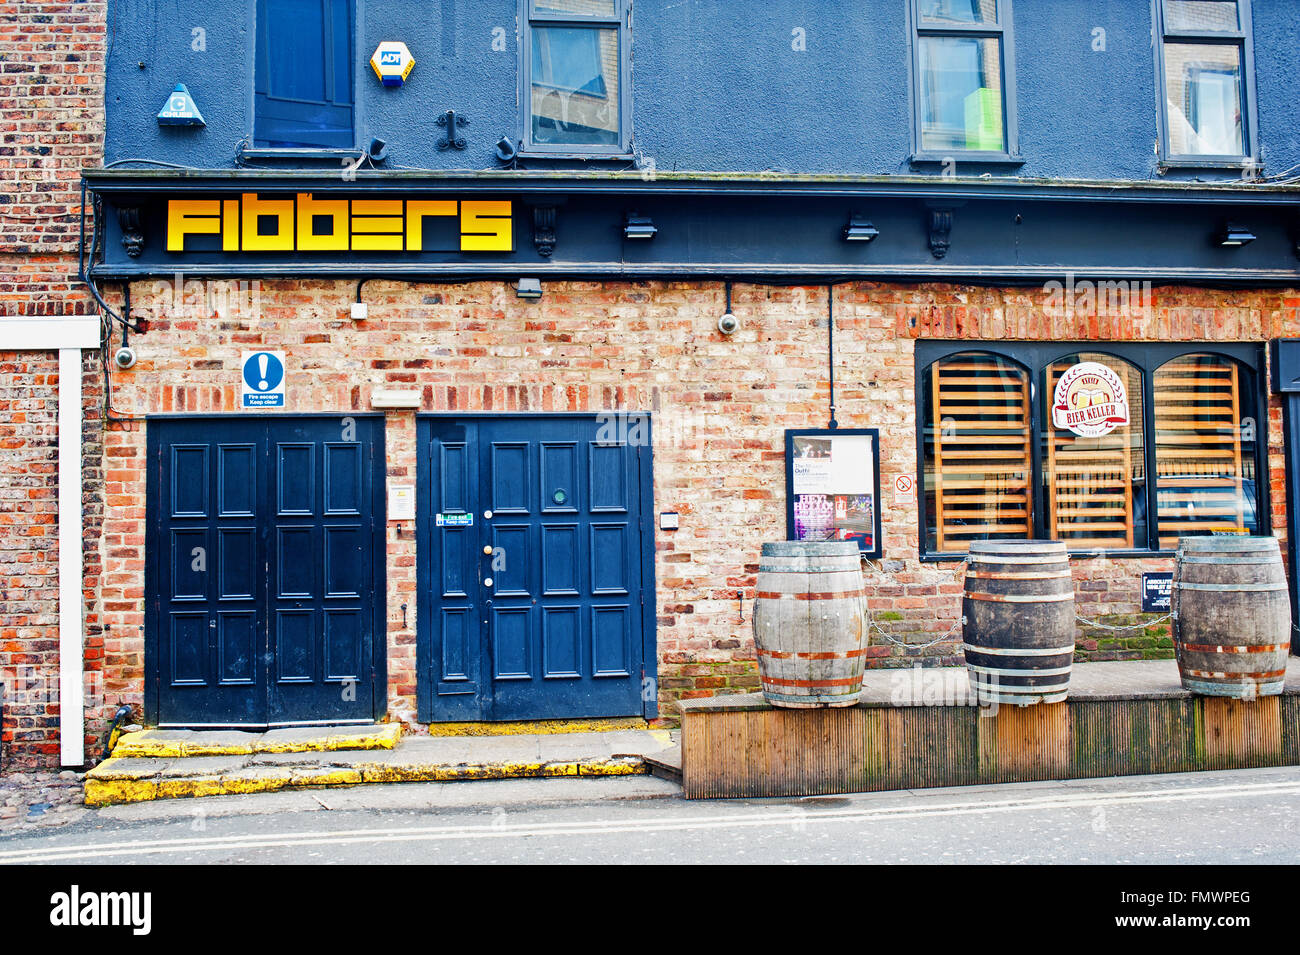 Fibbers Music venue, York - Stock Image